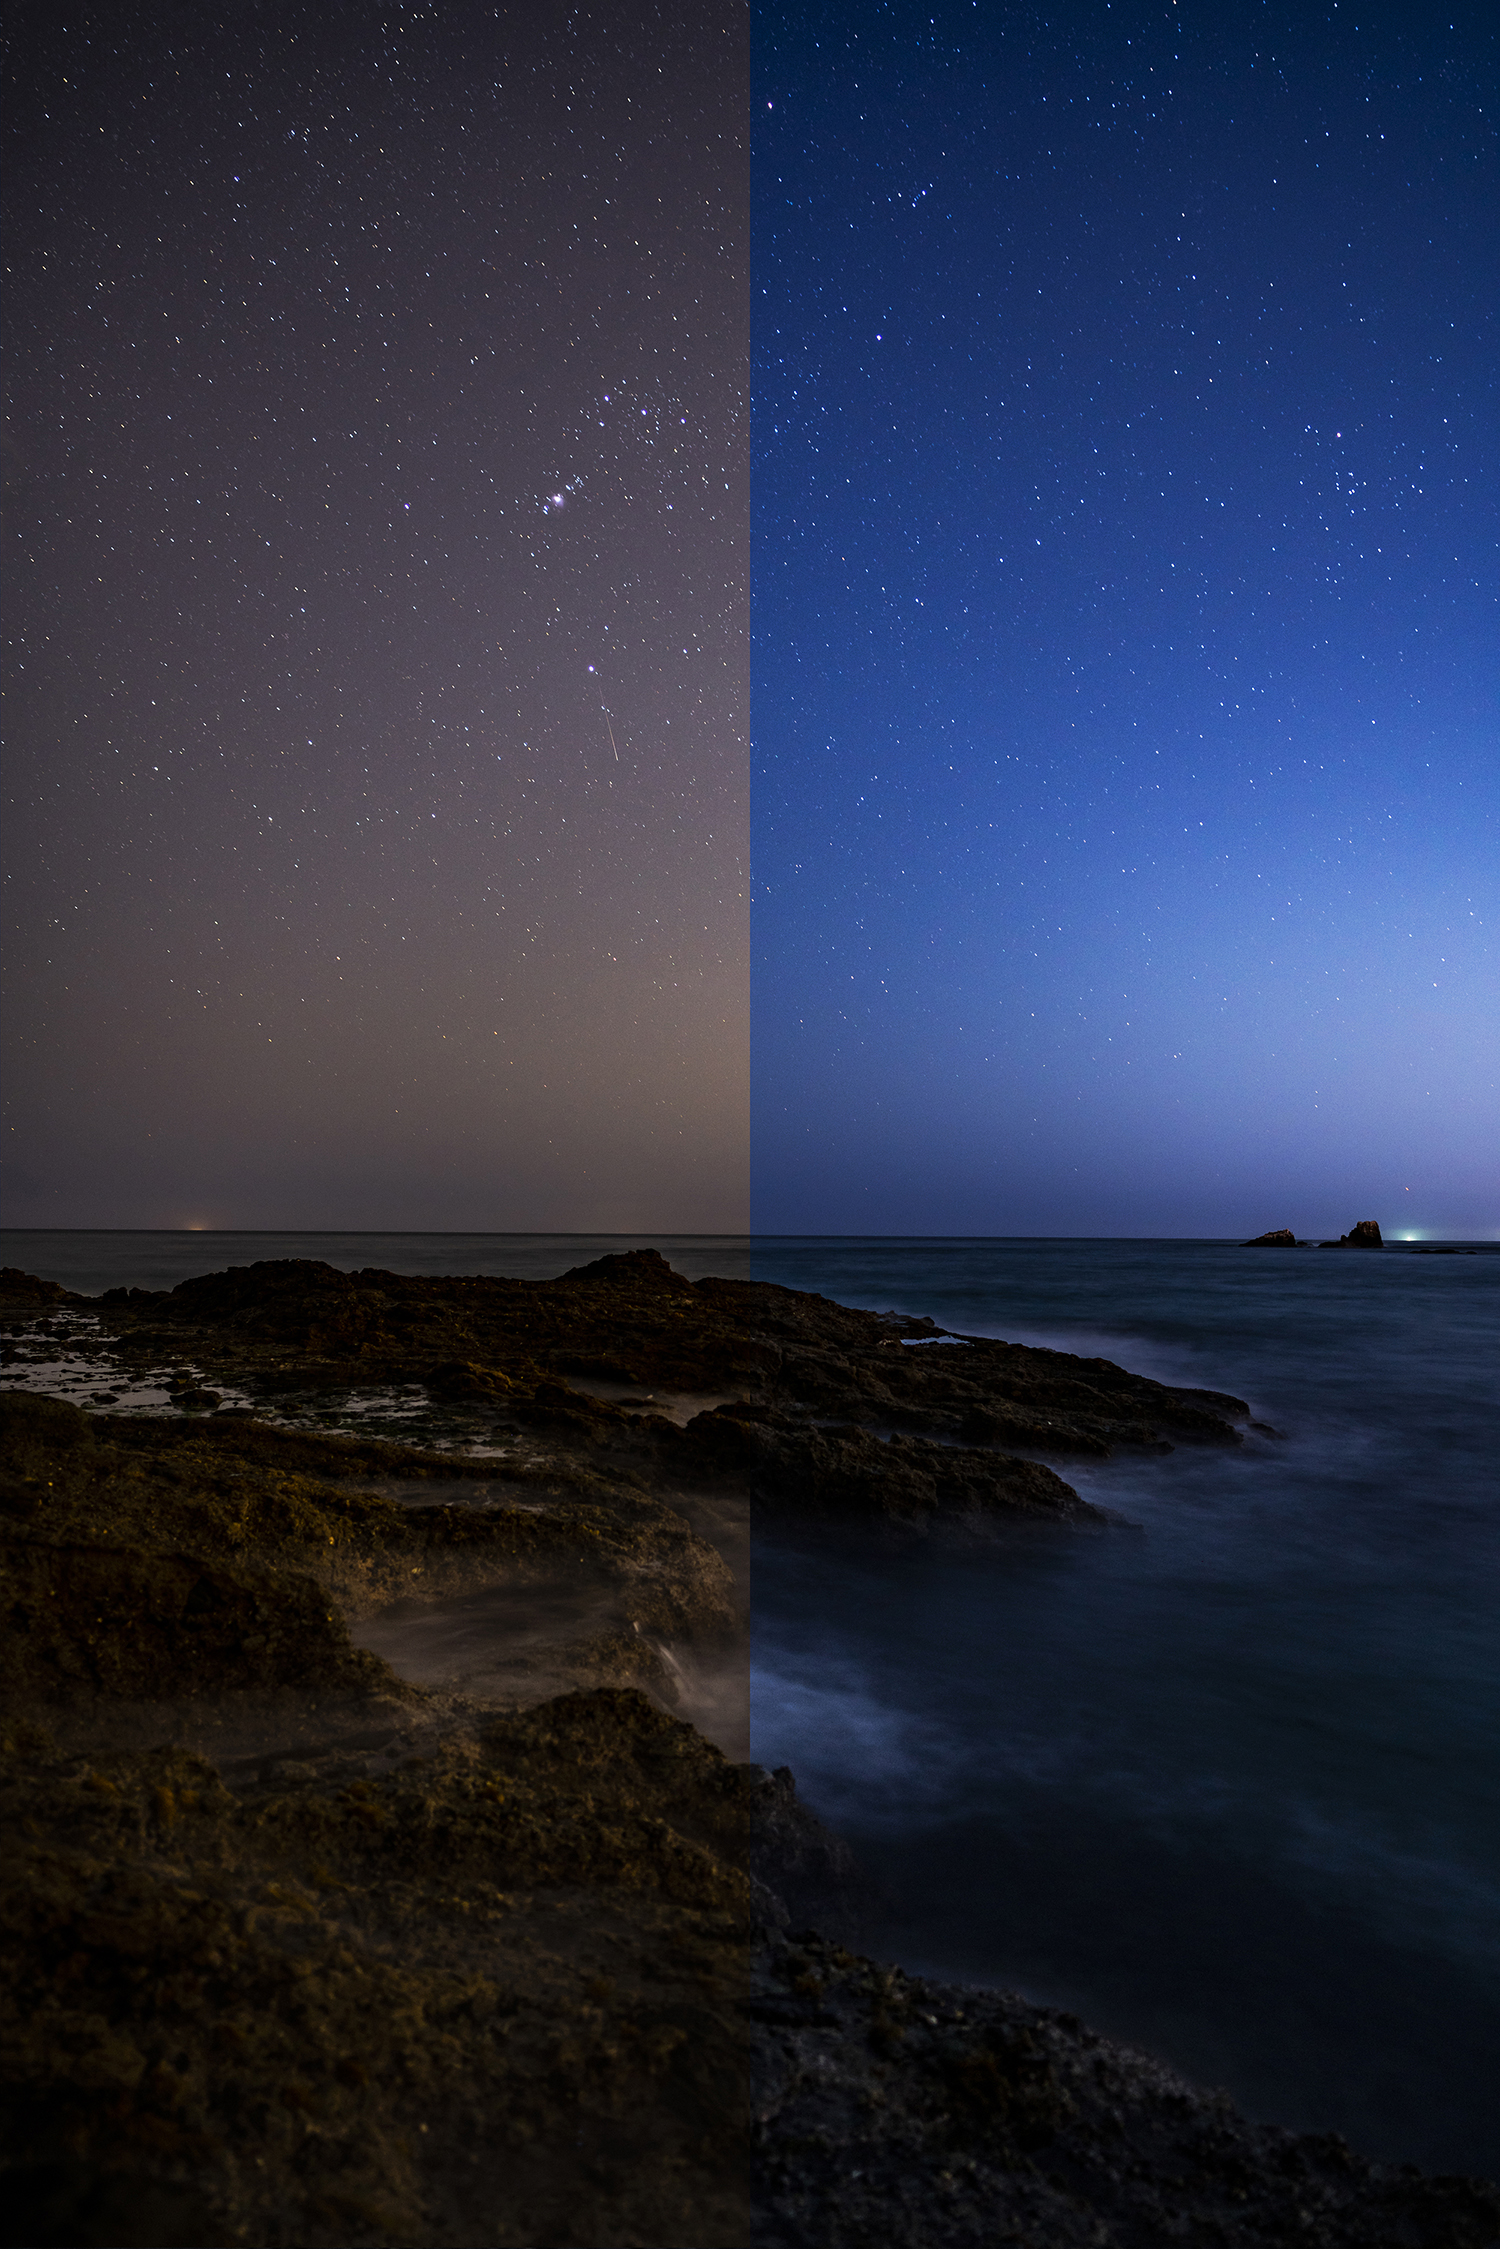 A split shot taken at a near by cove close to the hustle and bustle of Laguna Beach, California using the Cokin Clearsky filter. Before on the left / after on the right.